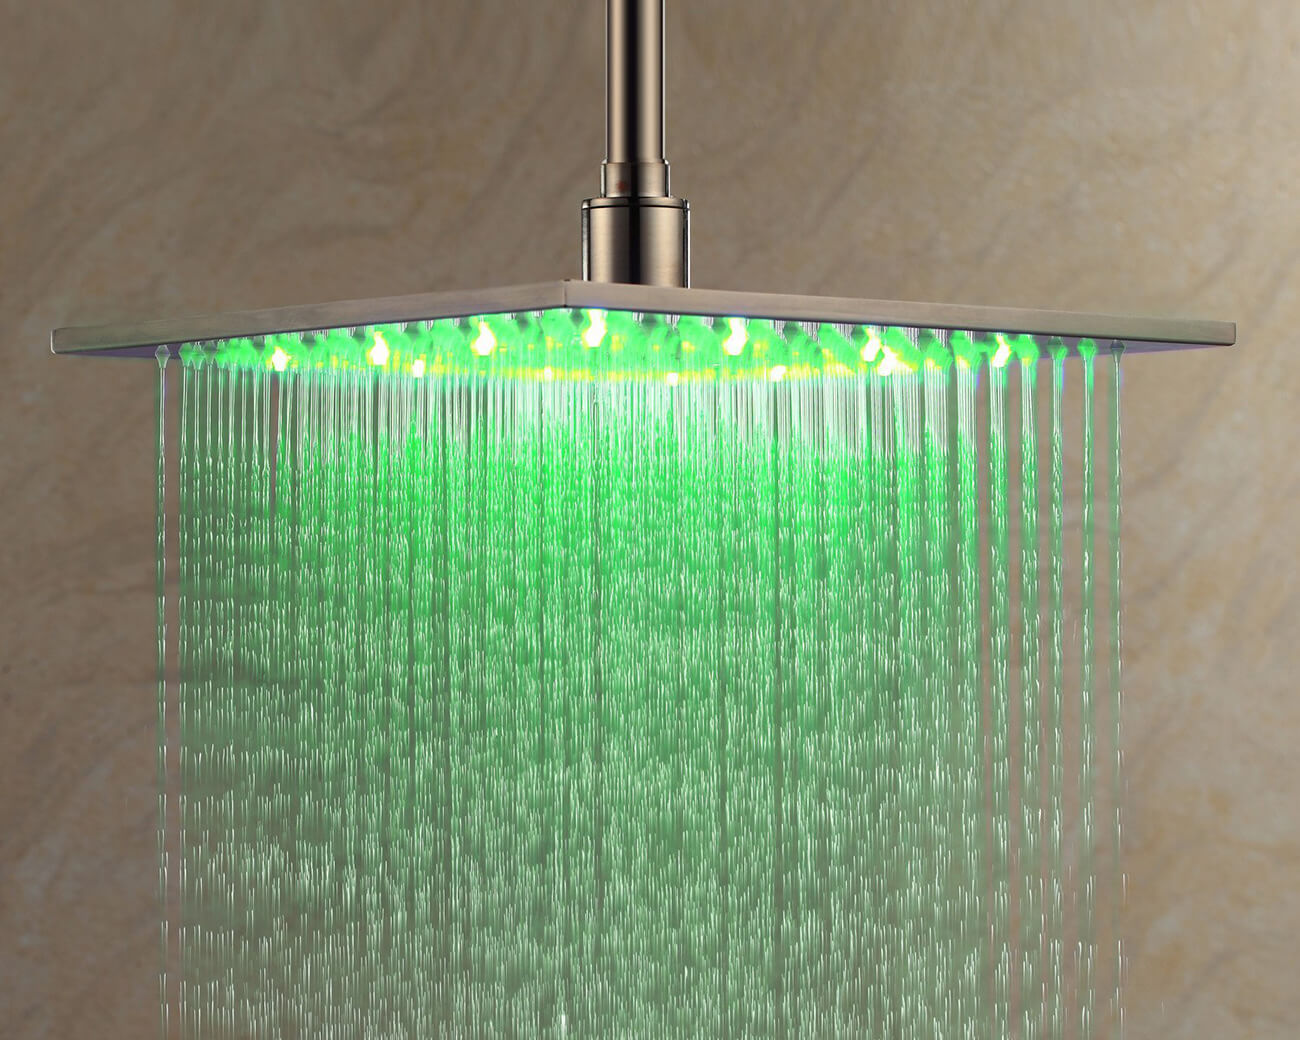 Rainfall Shower Head with Color Changing LED Light